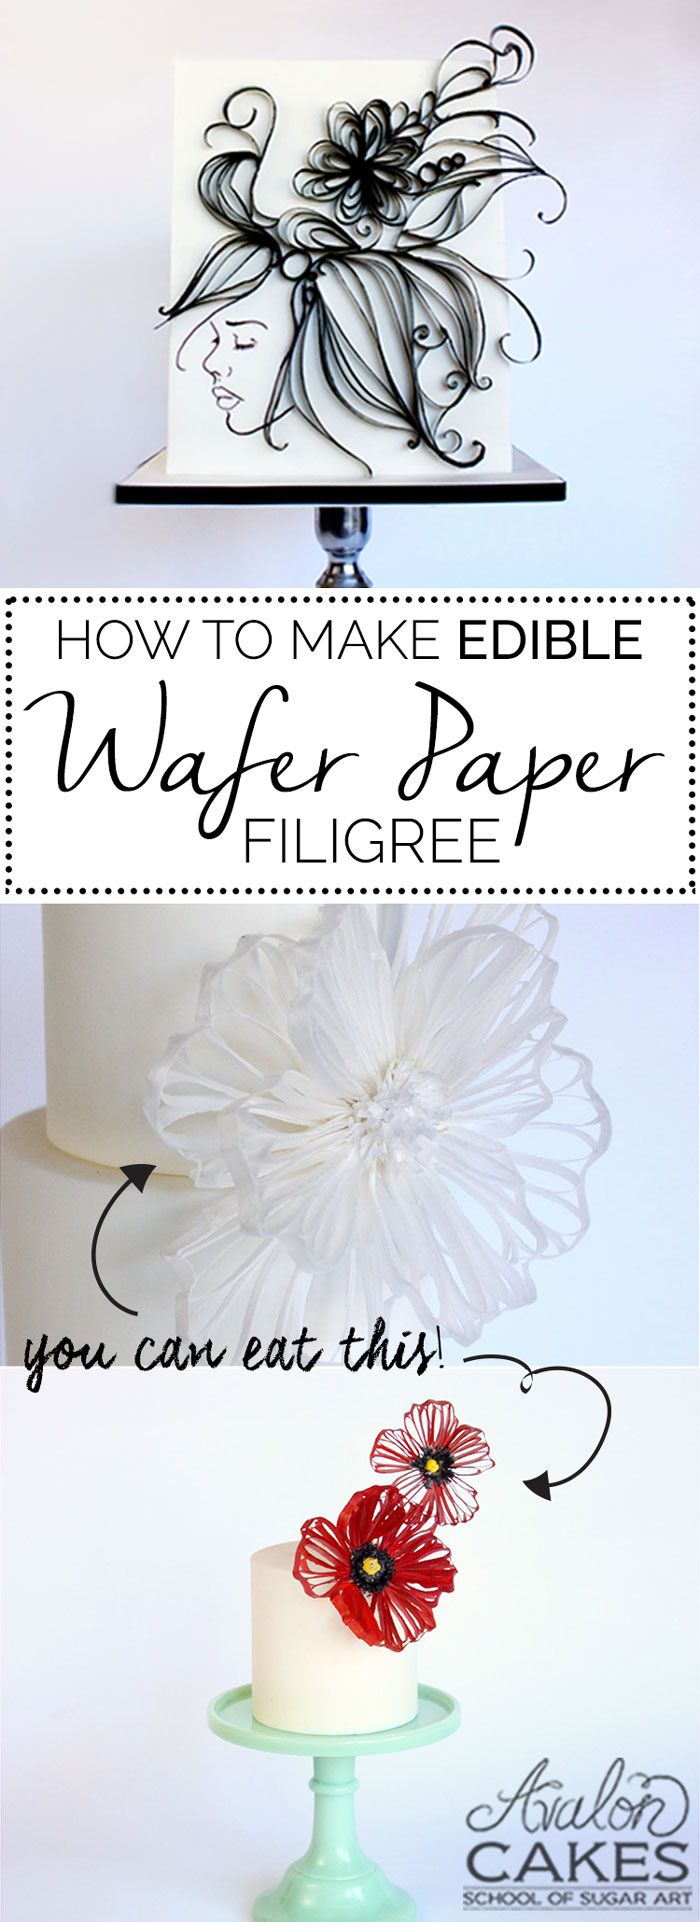 How to make Edible Wafer Paper Filigree! This step by step video tutorial will teach you how. Click through to see more!